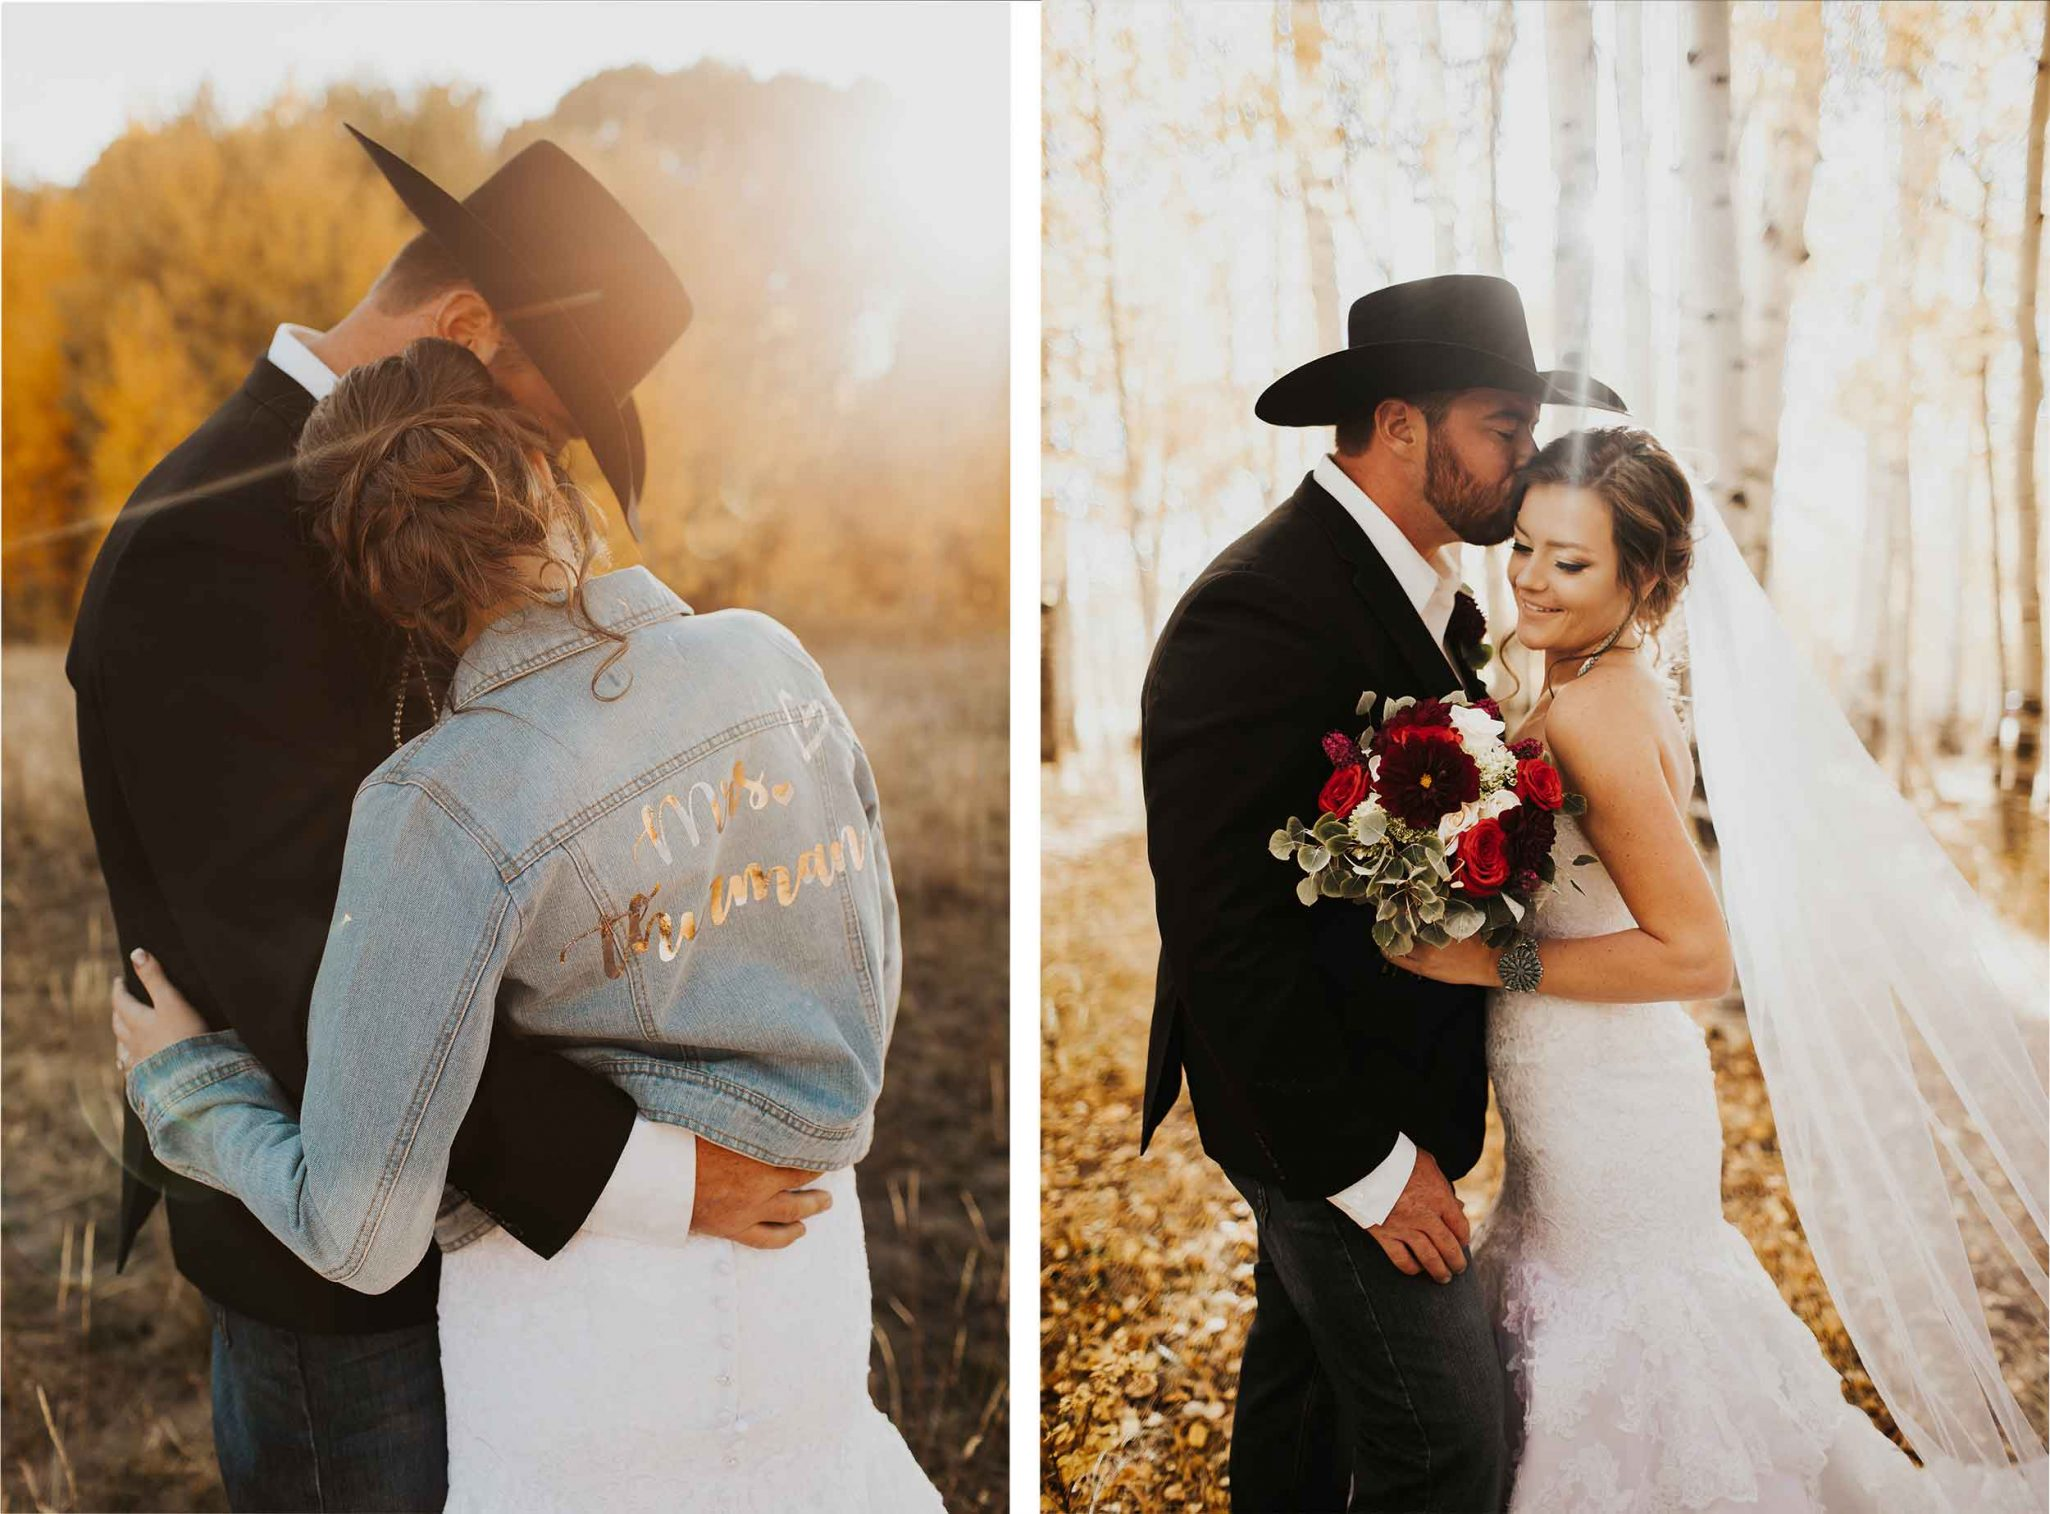 Ranch wedding at Double R Ranch, Mancos, Colorado